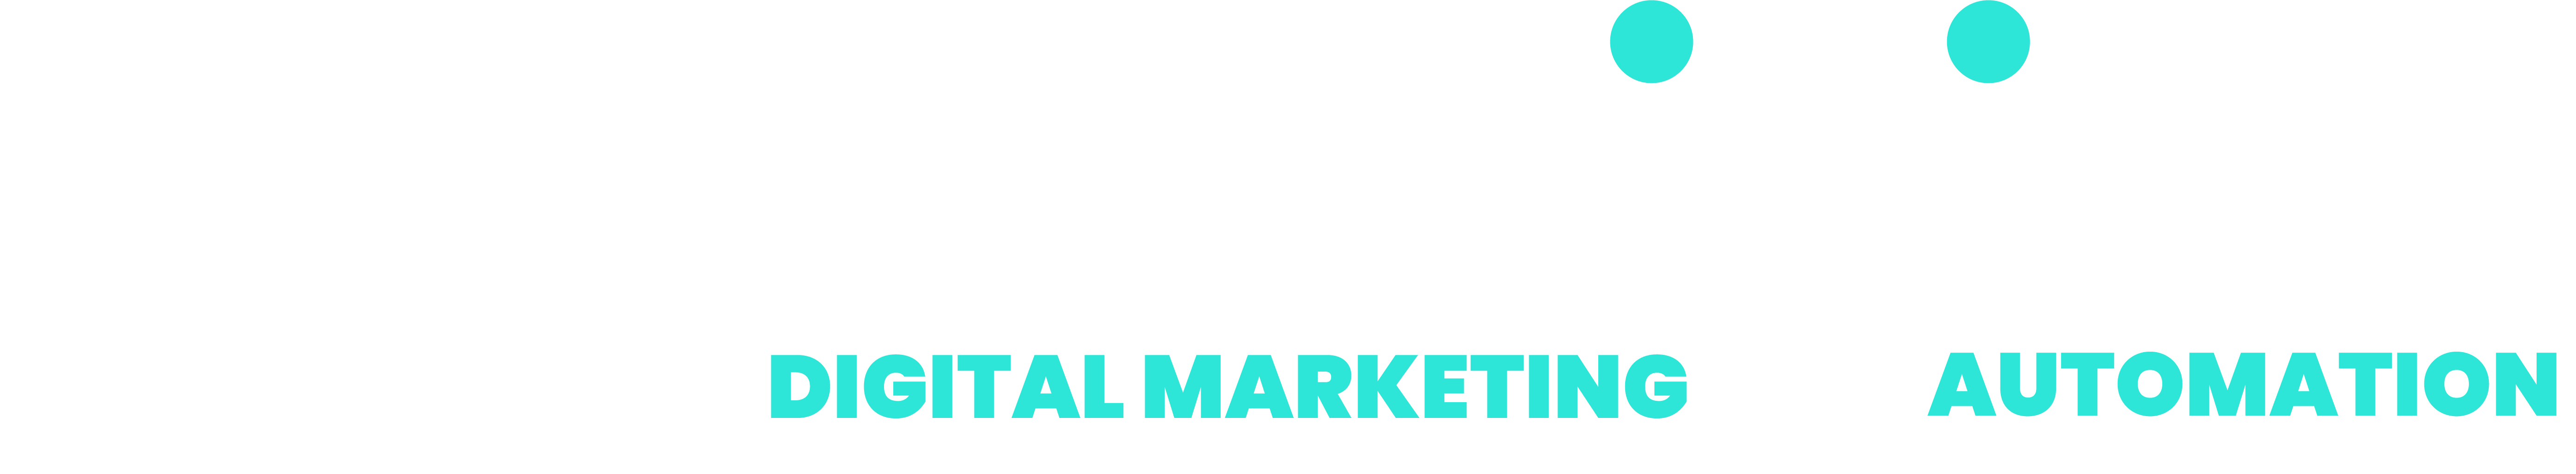 Sooper Digital Ltd